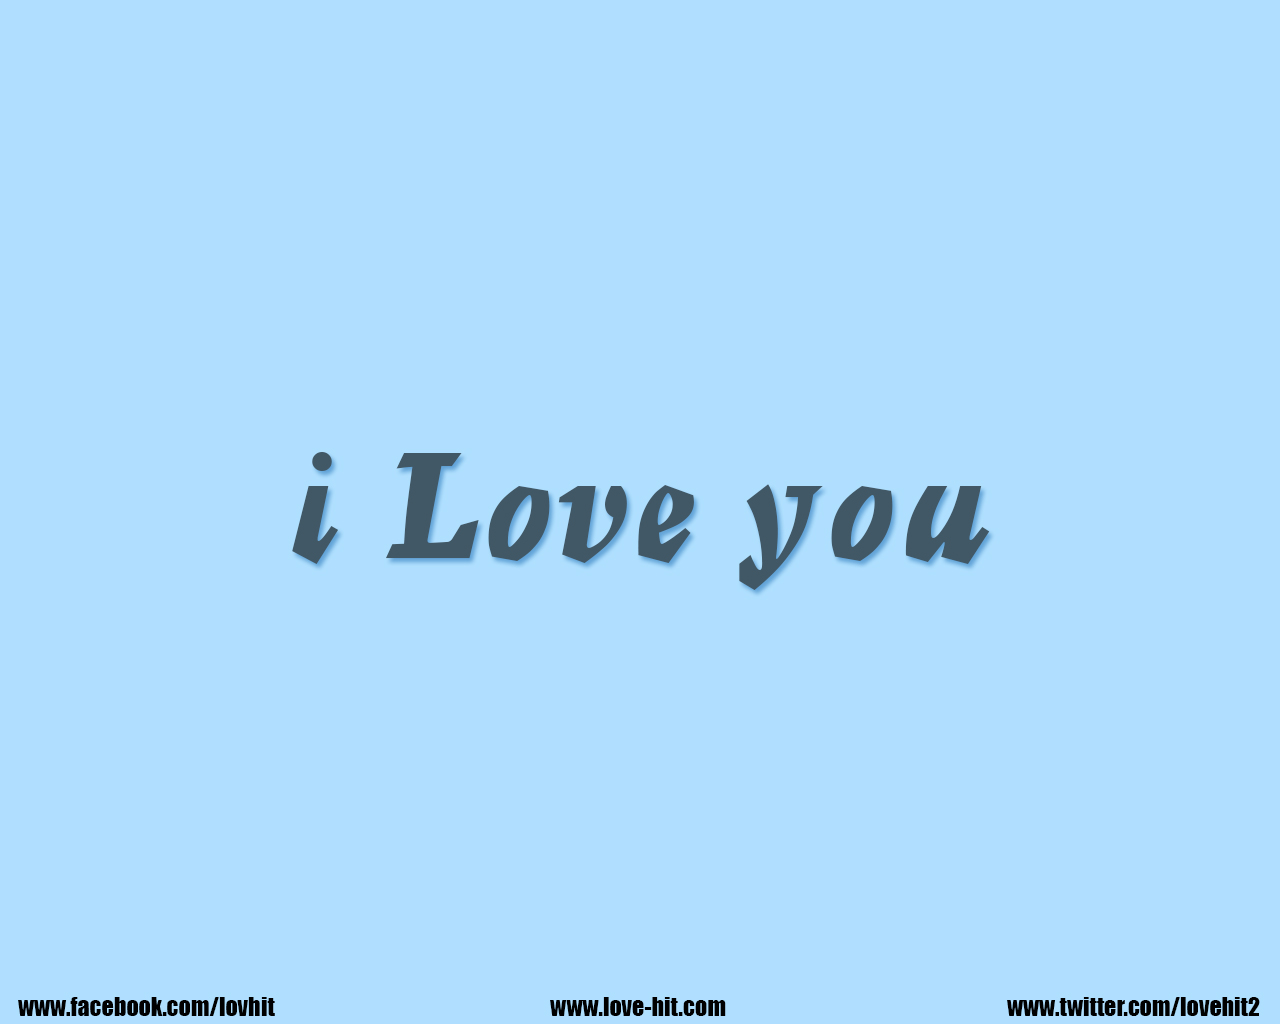 i love you- sky blue